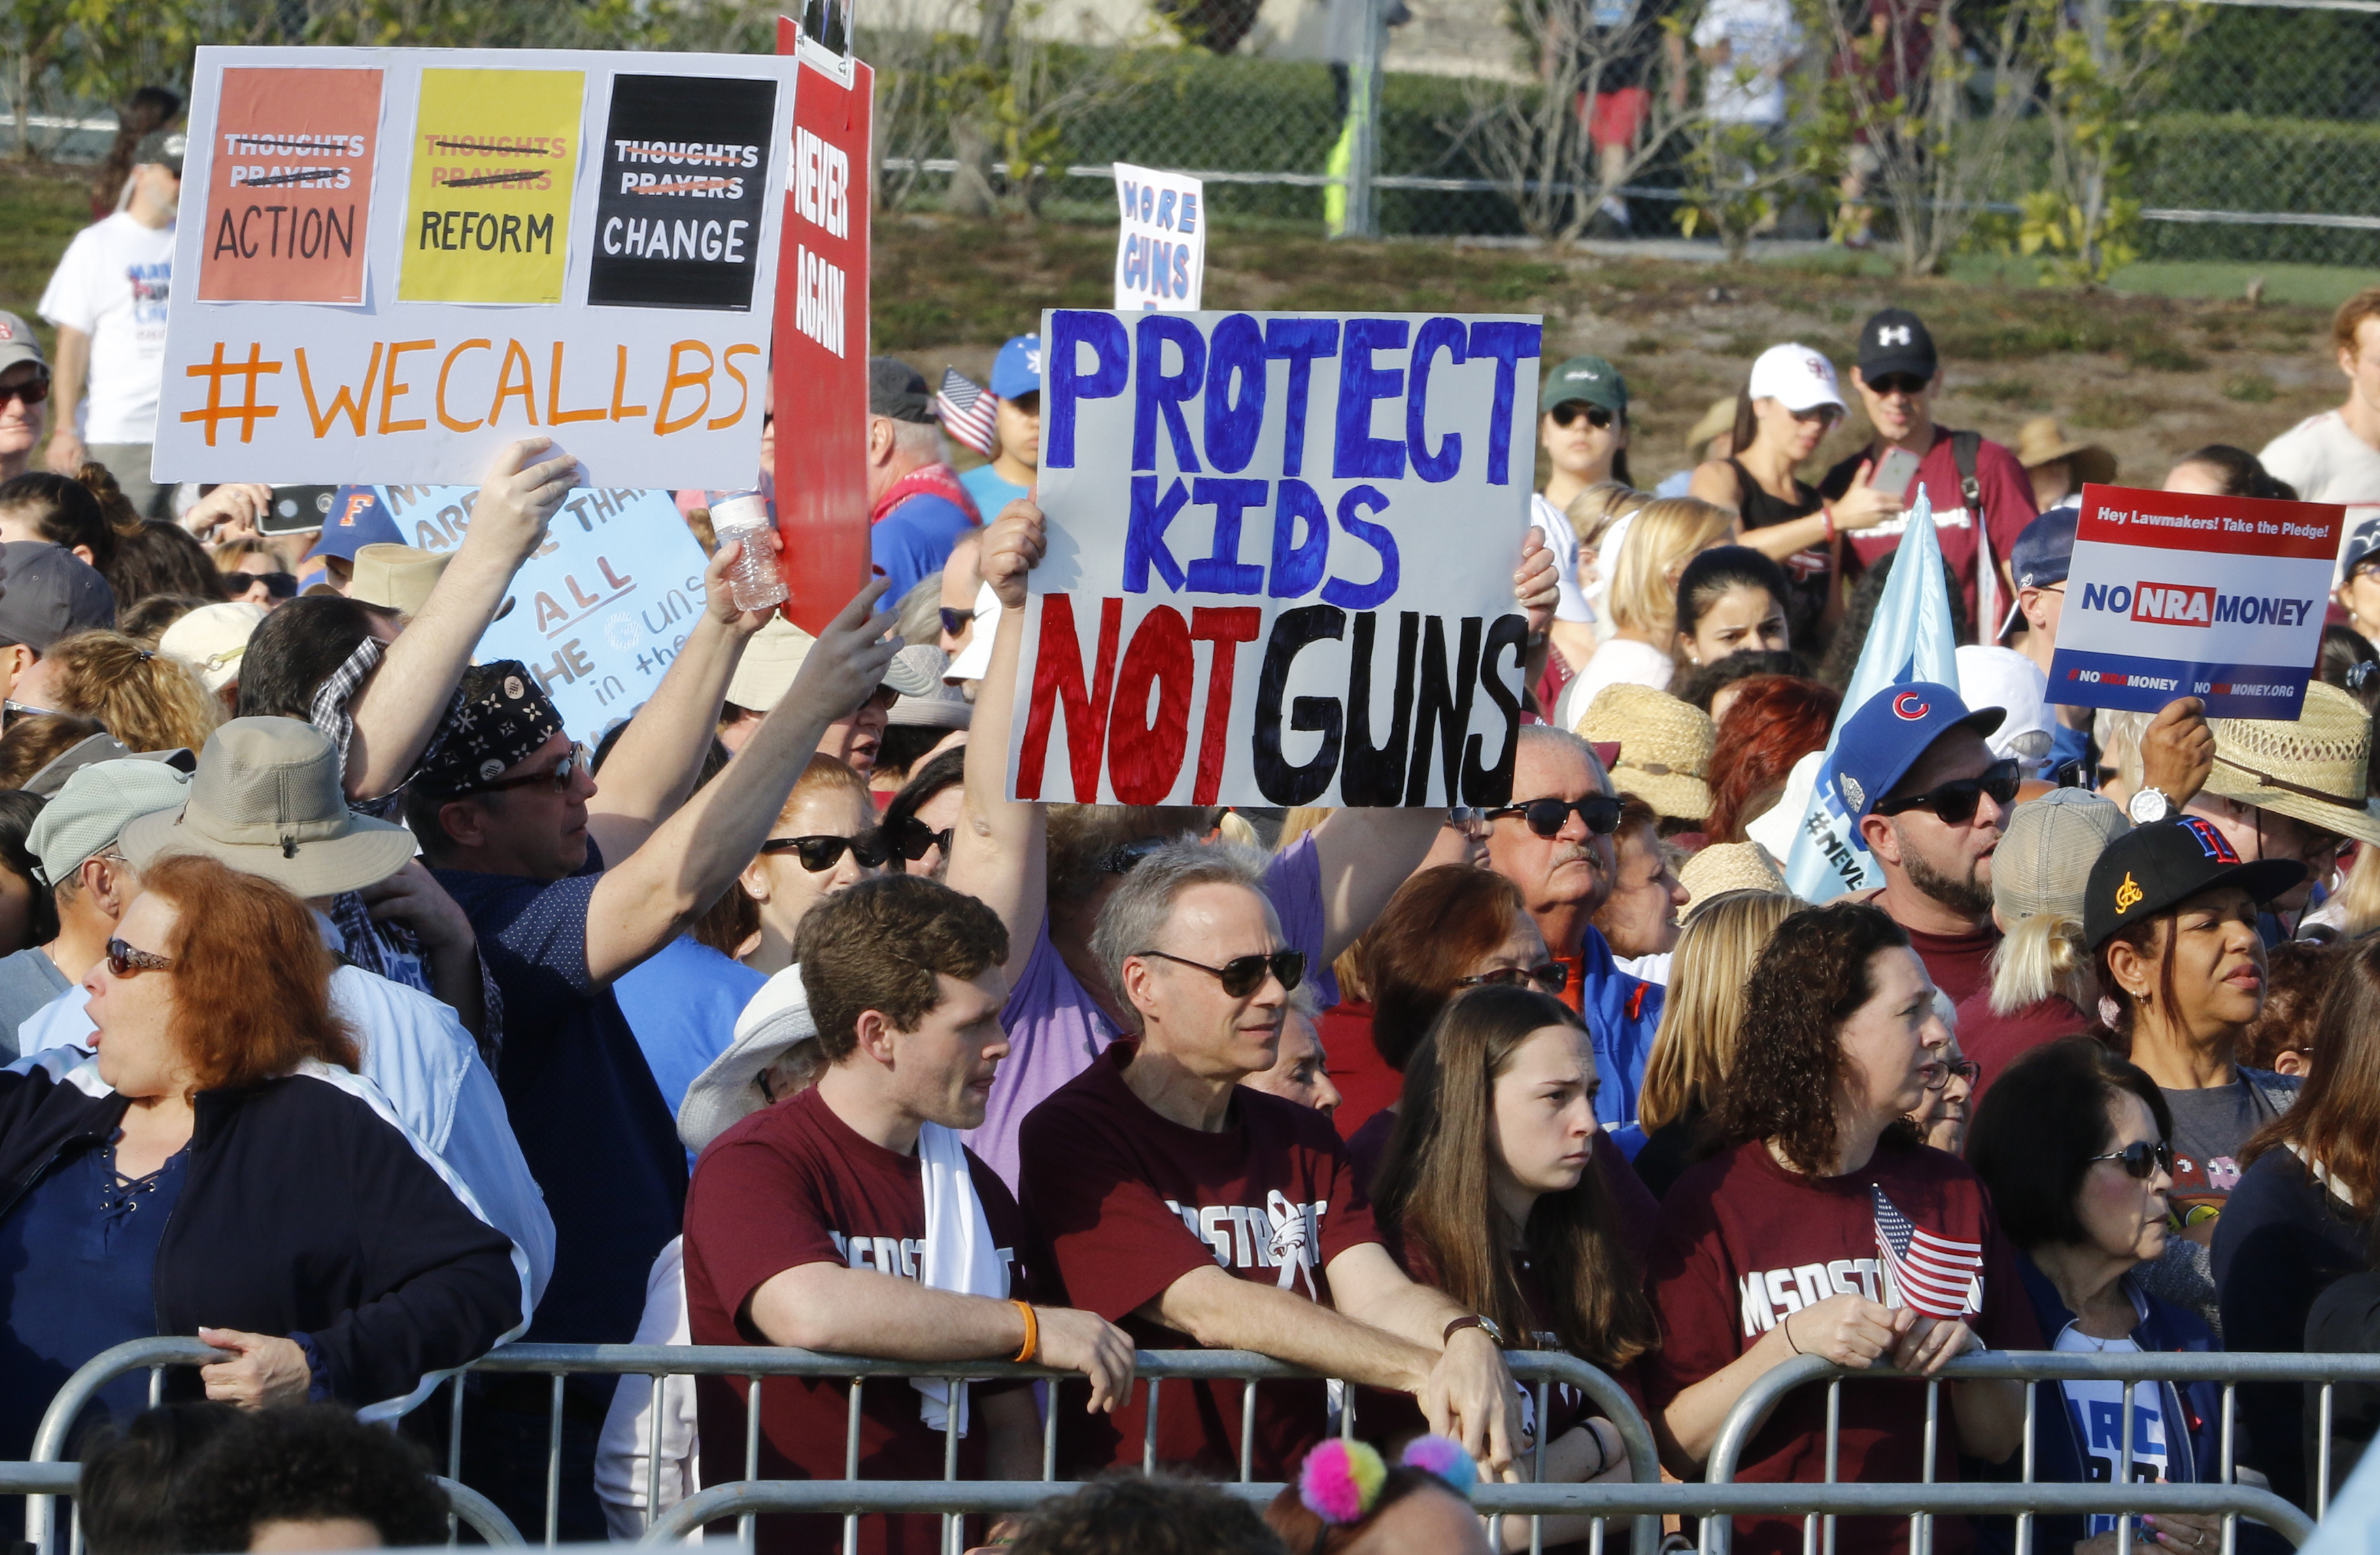 "<div class=""meta image-caption""><div class=""origin-logo origin-image ap""><span>AP</span></div><span class=""caption-text"">Participants gather during the March For Our Lives event Saturday, March 24, 2018, in Parkland, Fla. (AP Photo/Joe Skipper)</span></div>"